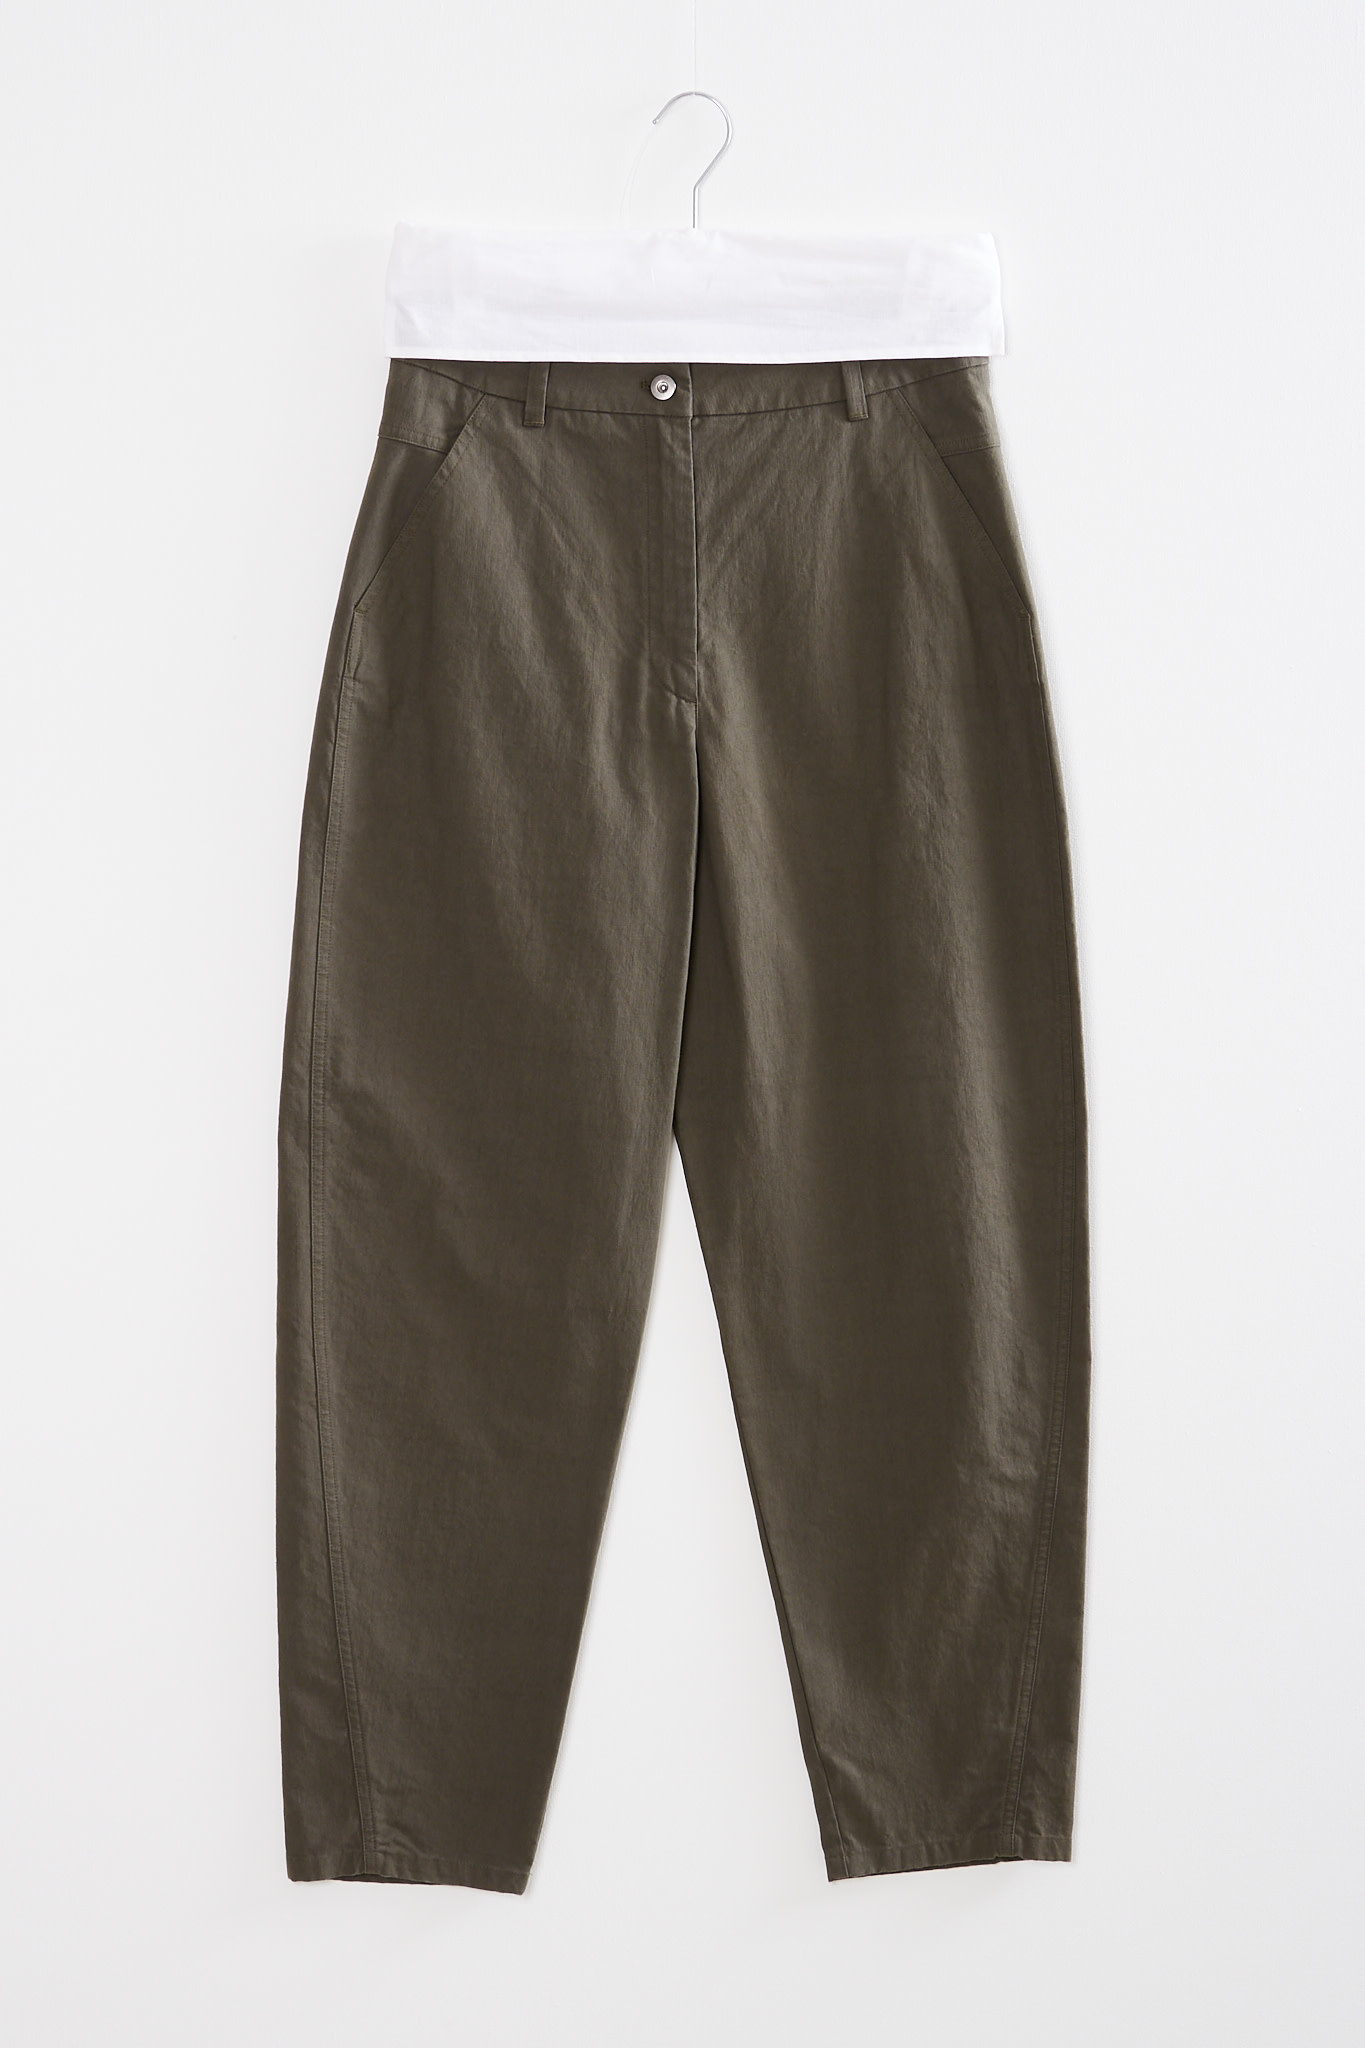 Humanoid Peggy primer trousers